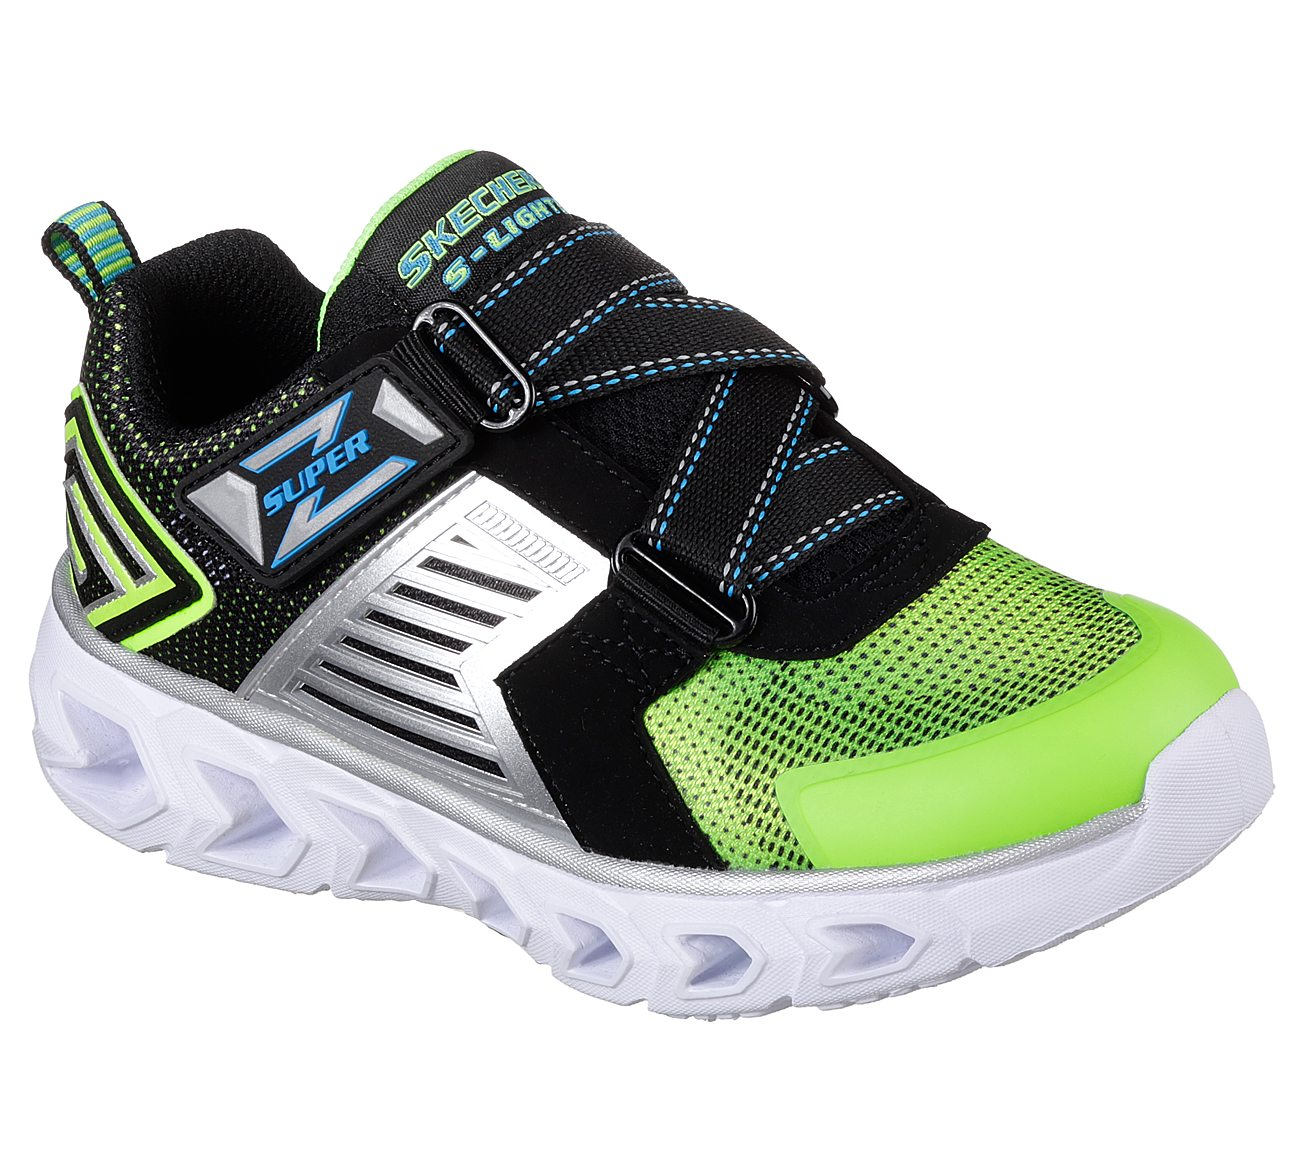 19220403eb8c Buy SKECHERS S Lights  Hypno-Flash 2.0 - Rapid Quake S-Lights Shoes only   45.00